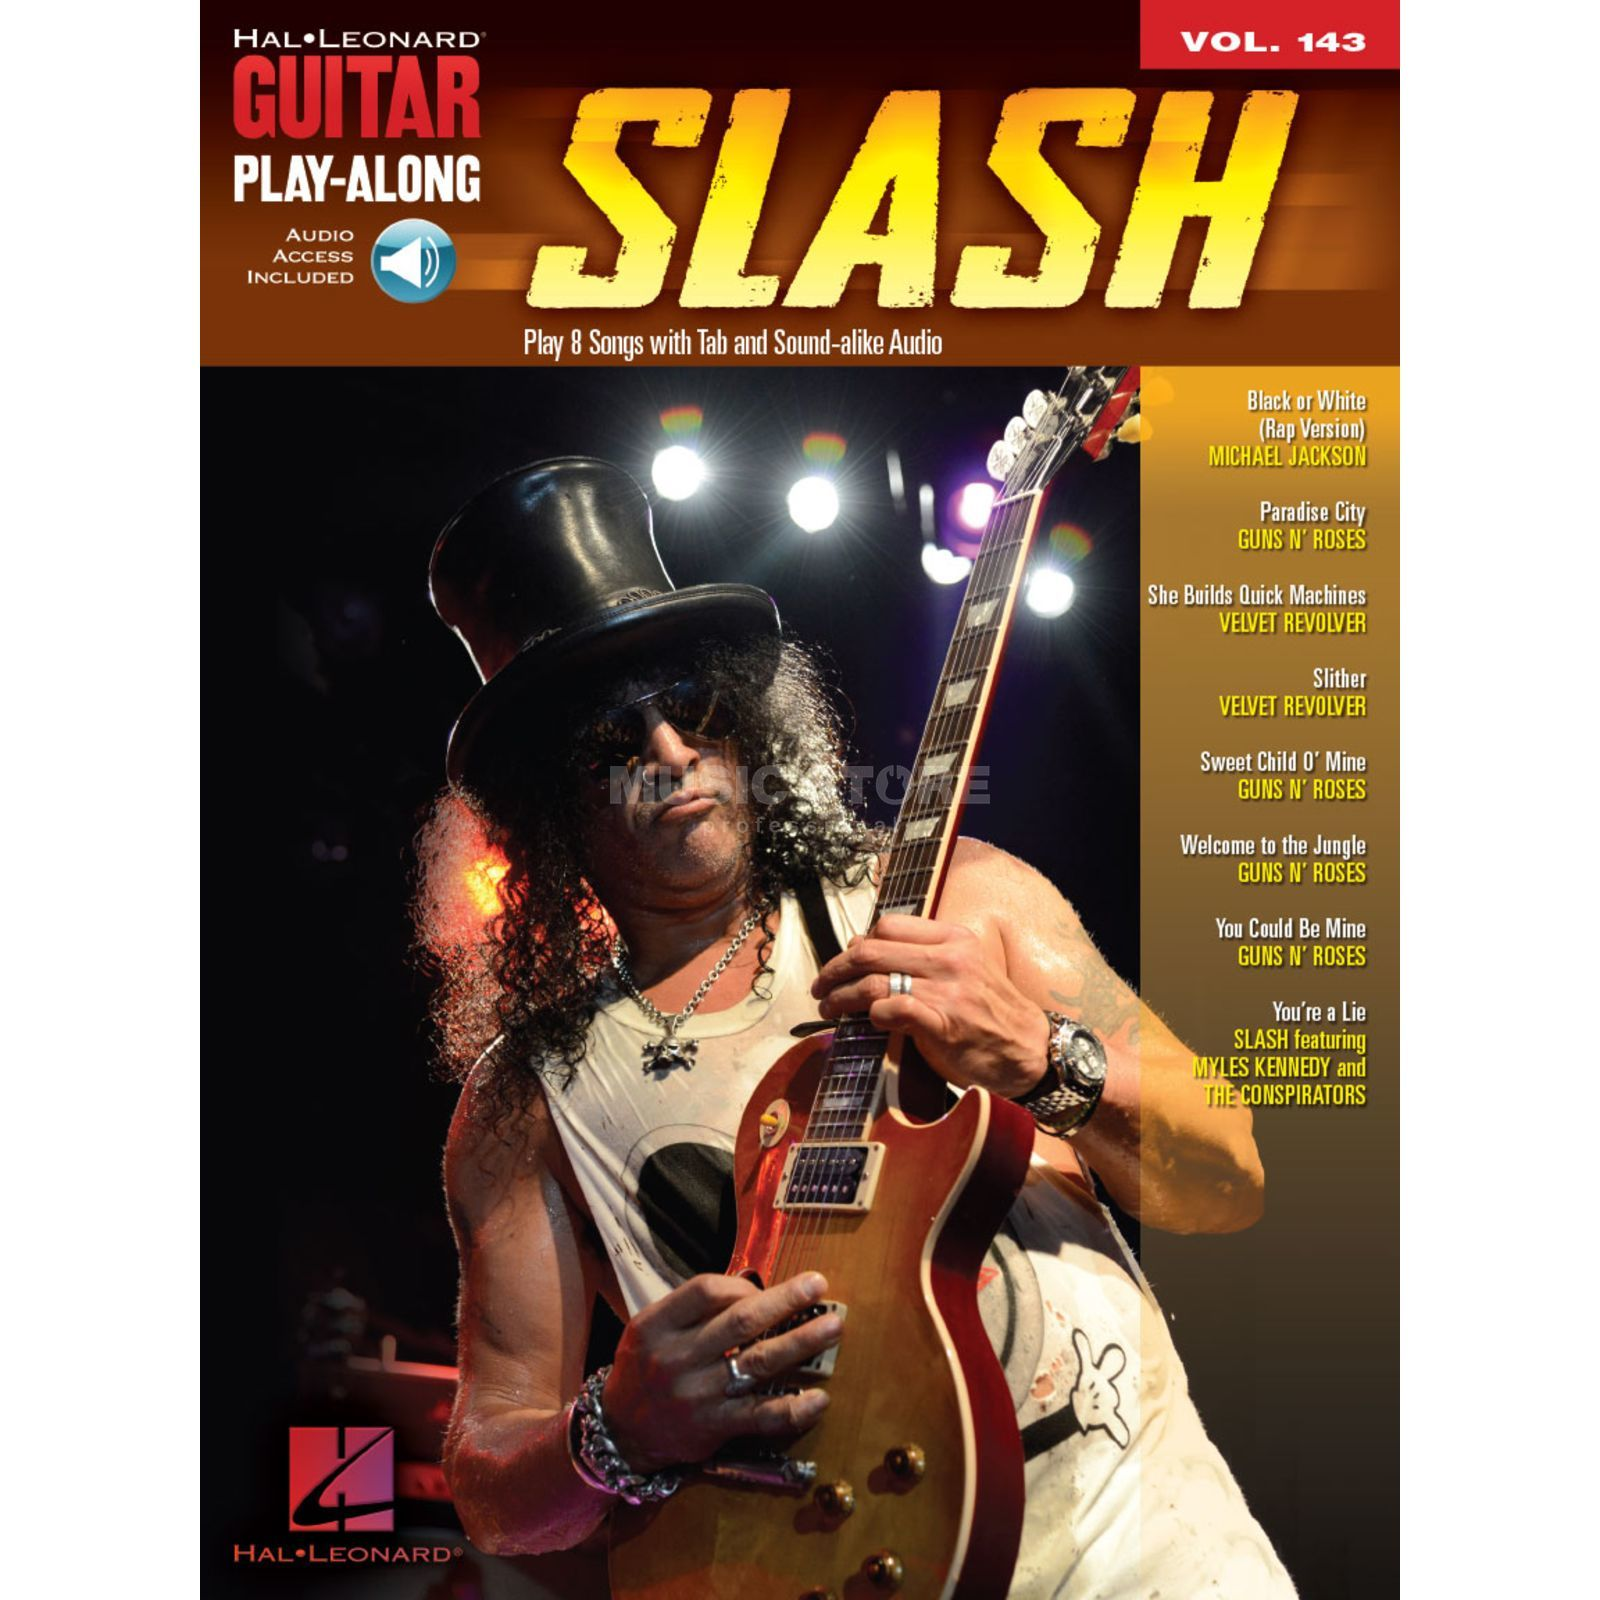 Hal Leonard Guitar Play-Along: Slash Vol. 143, TAB und Download Produktbild